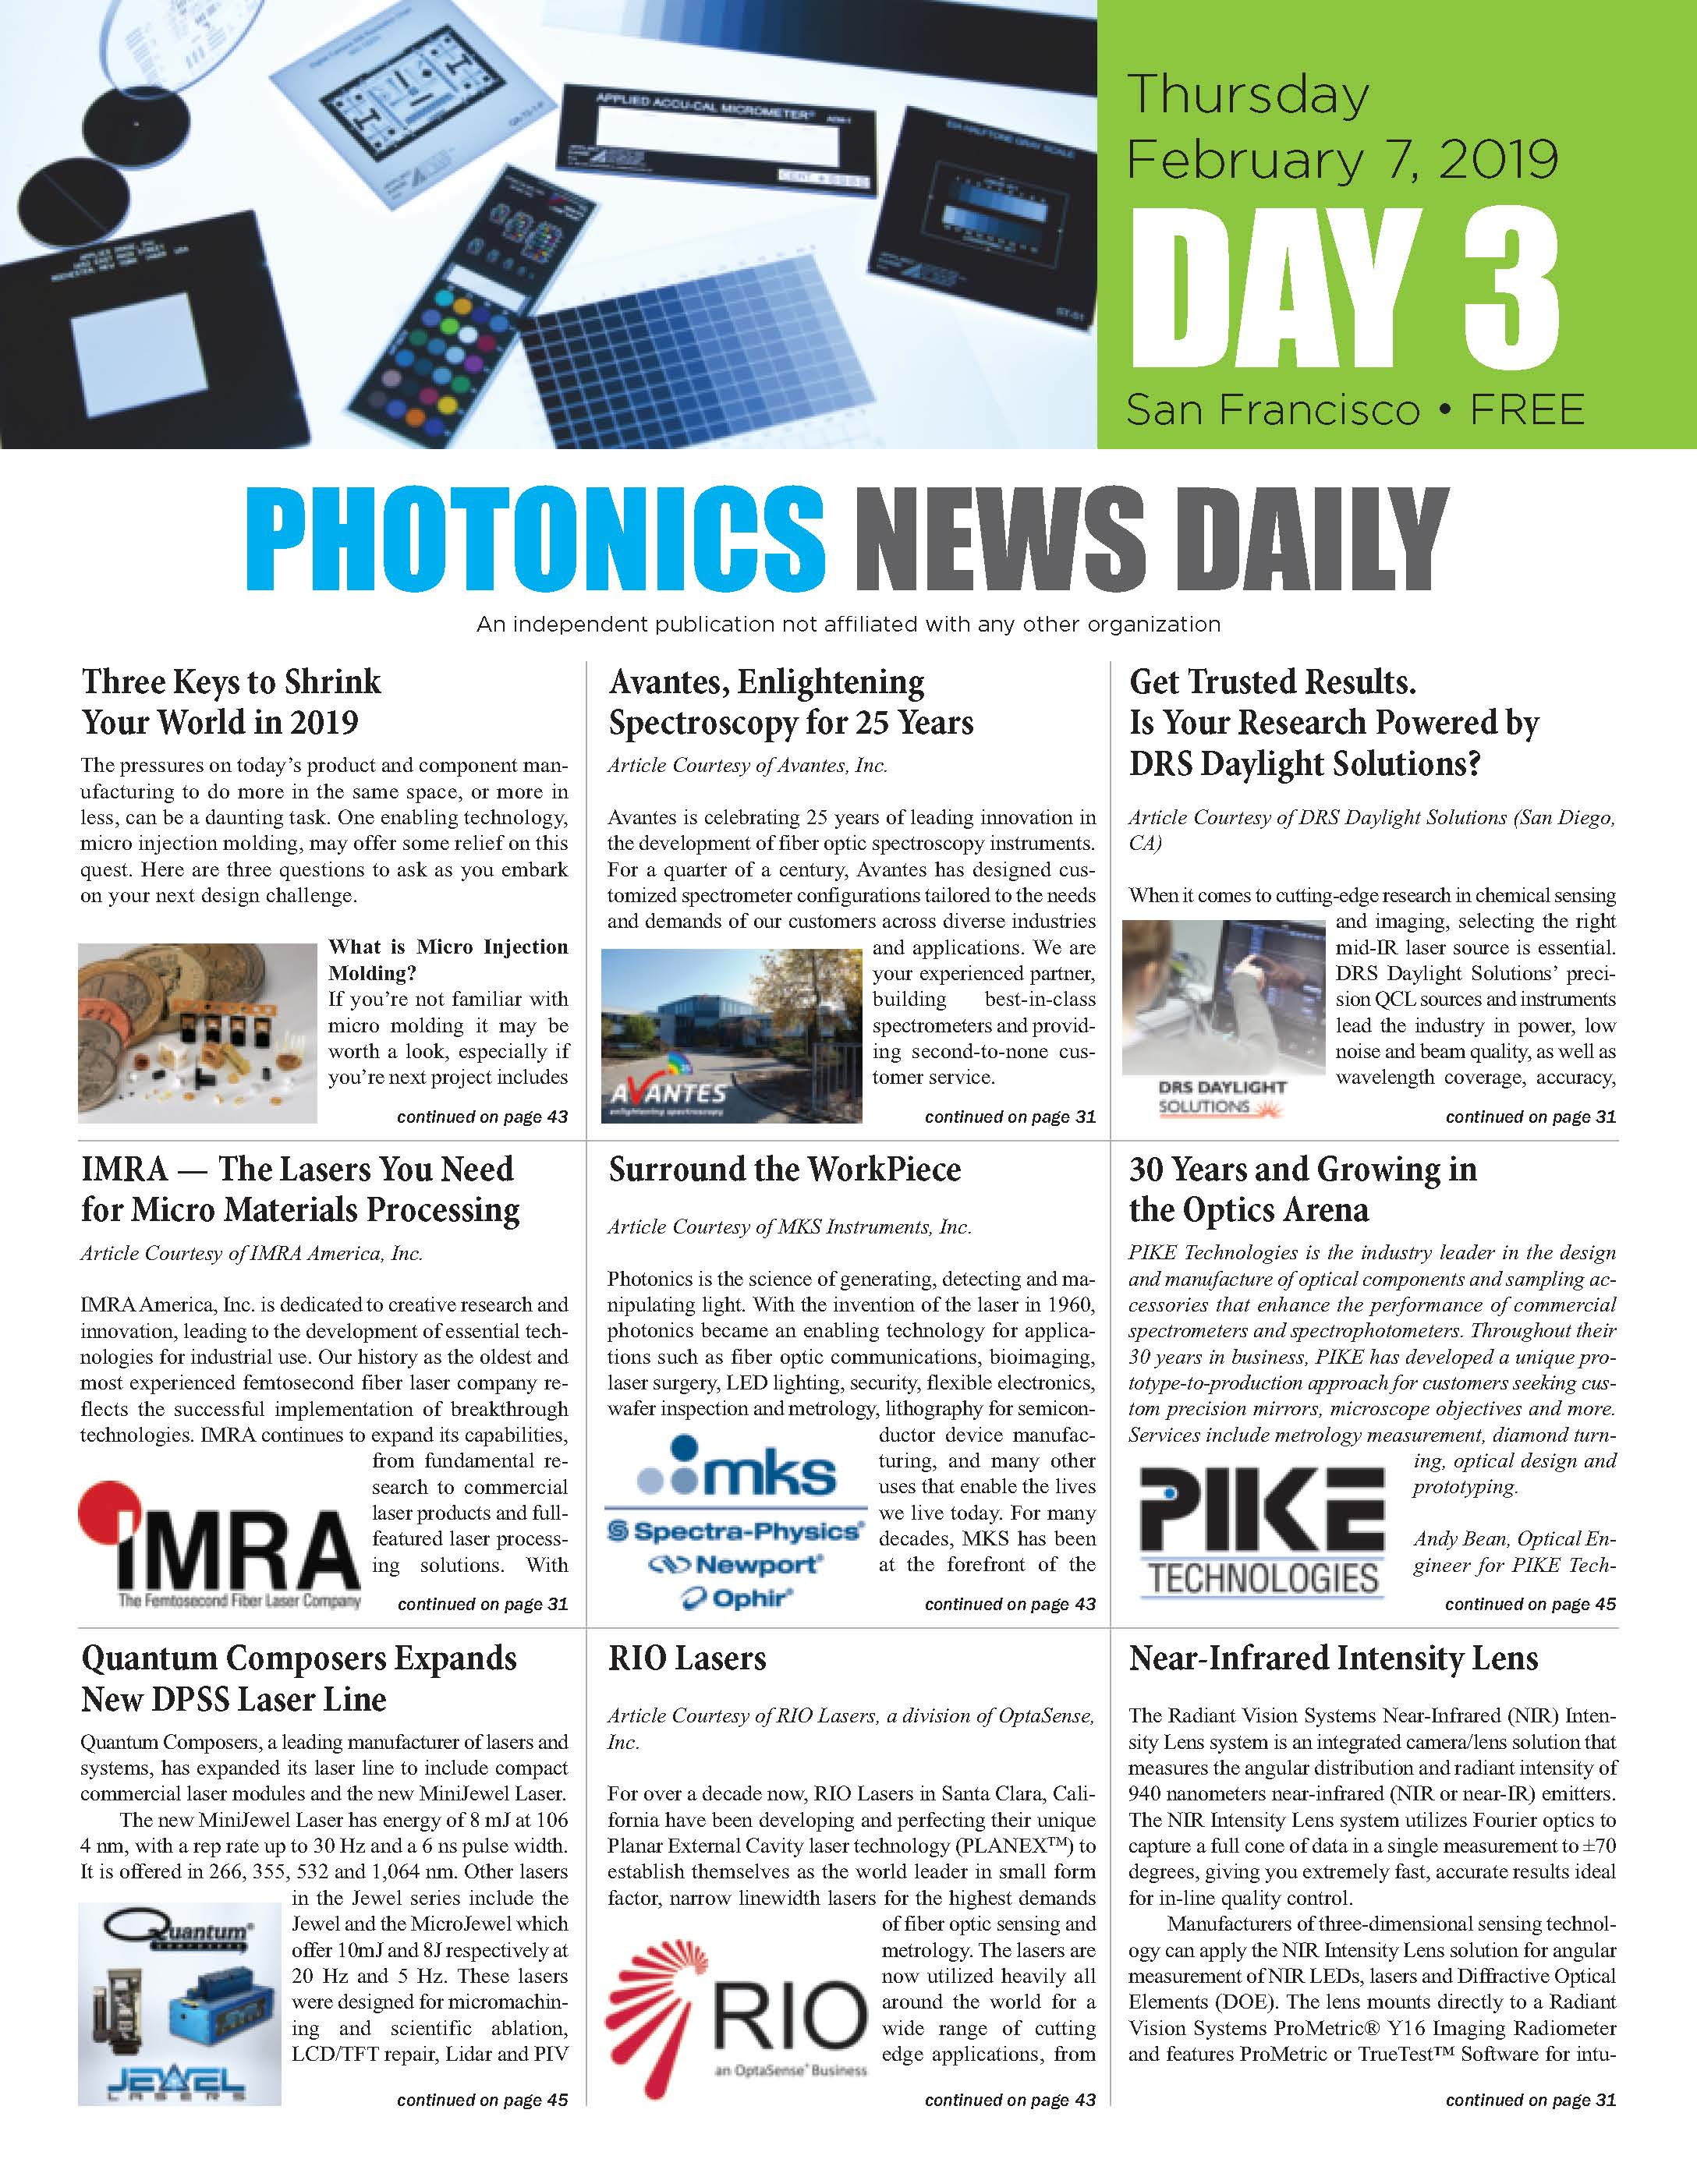 Photonics News Daily